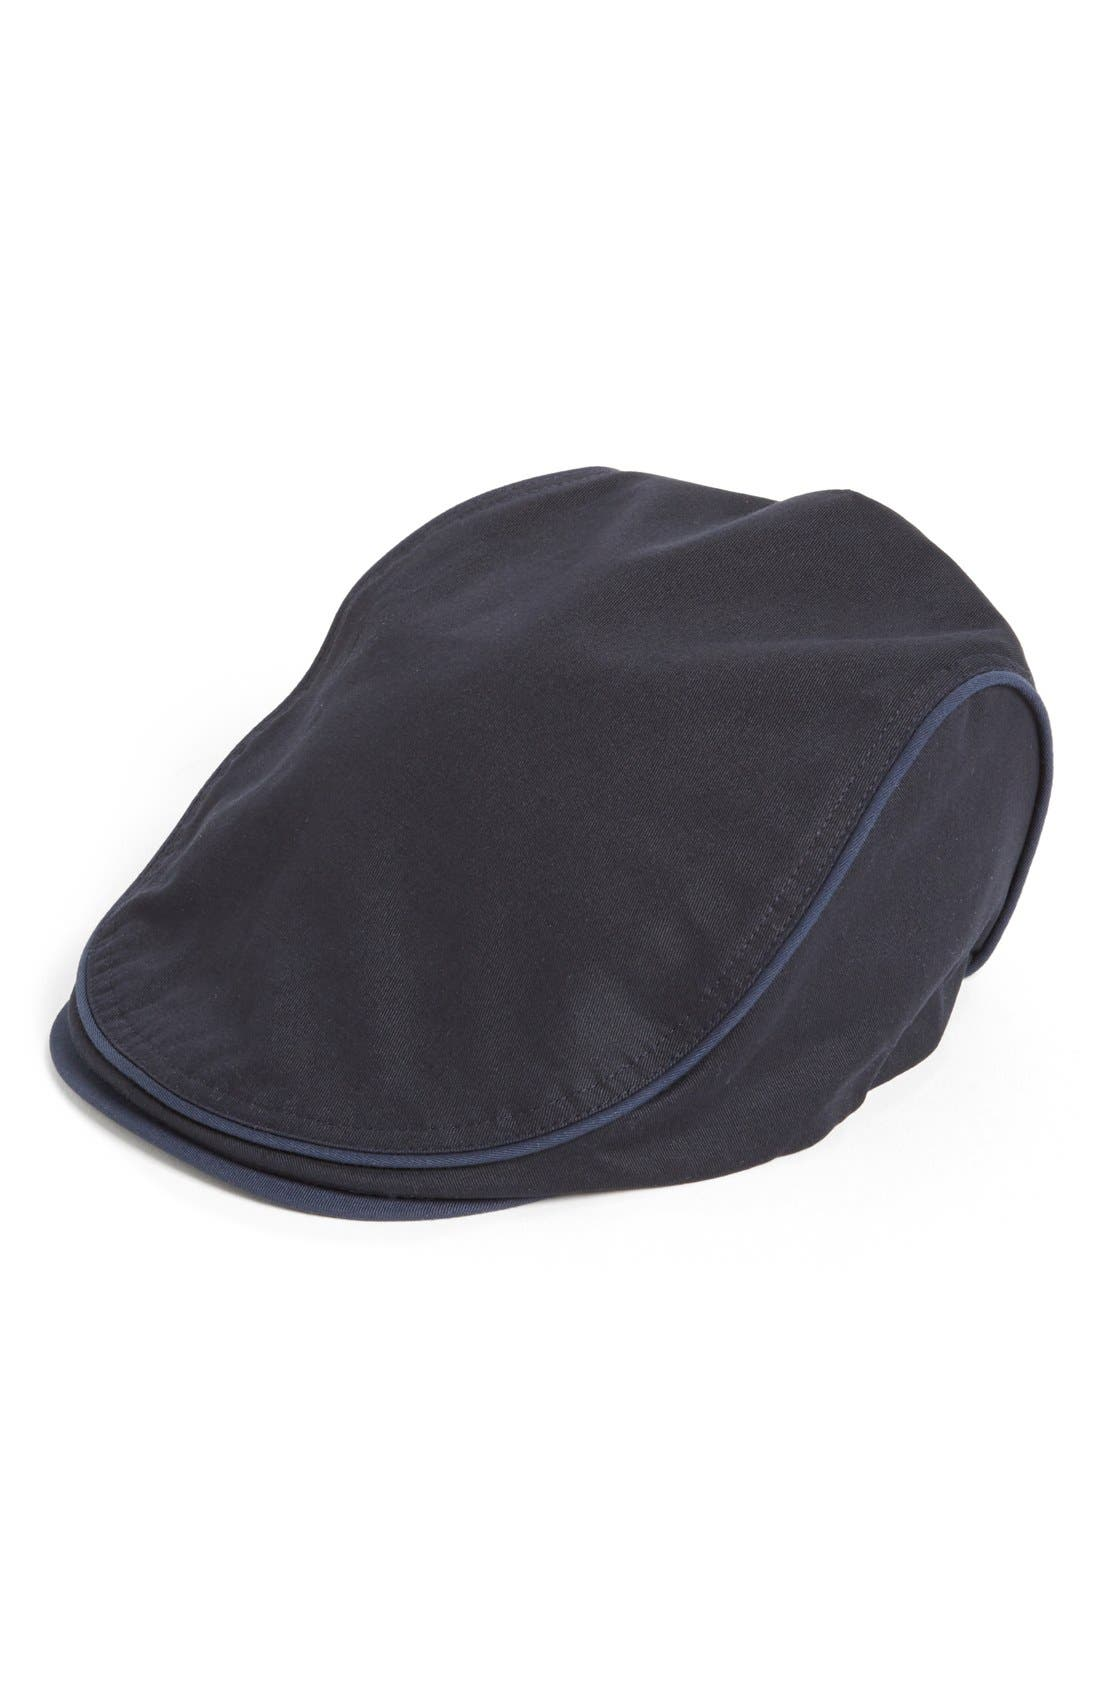 Alternate Image 1 Selected - Ted Baker London Cotton Driving Cap